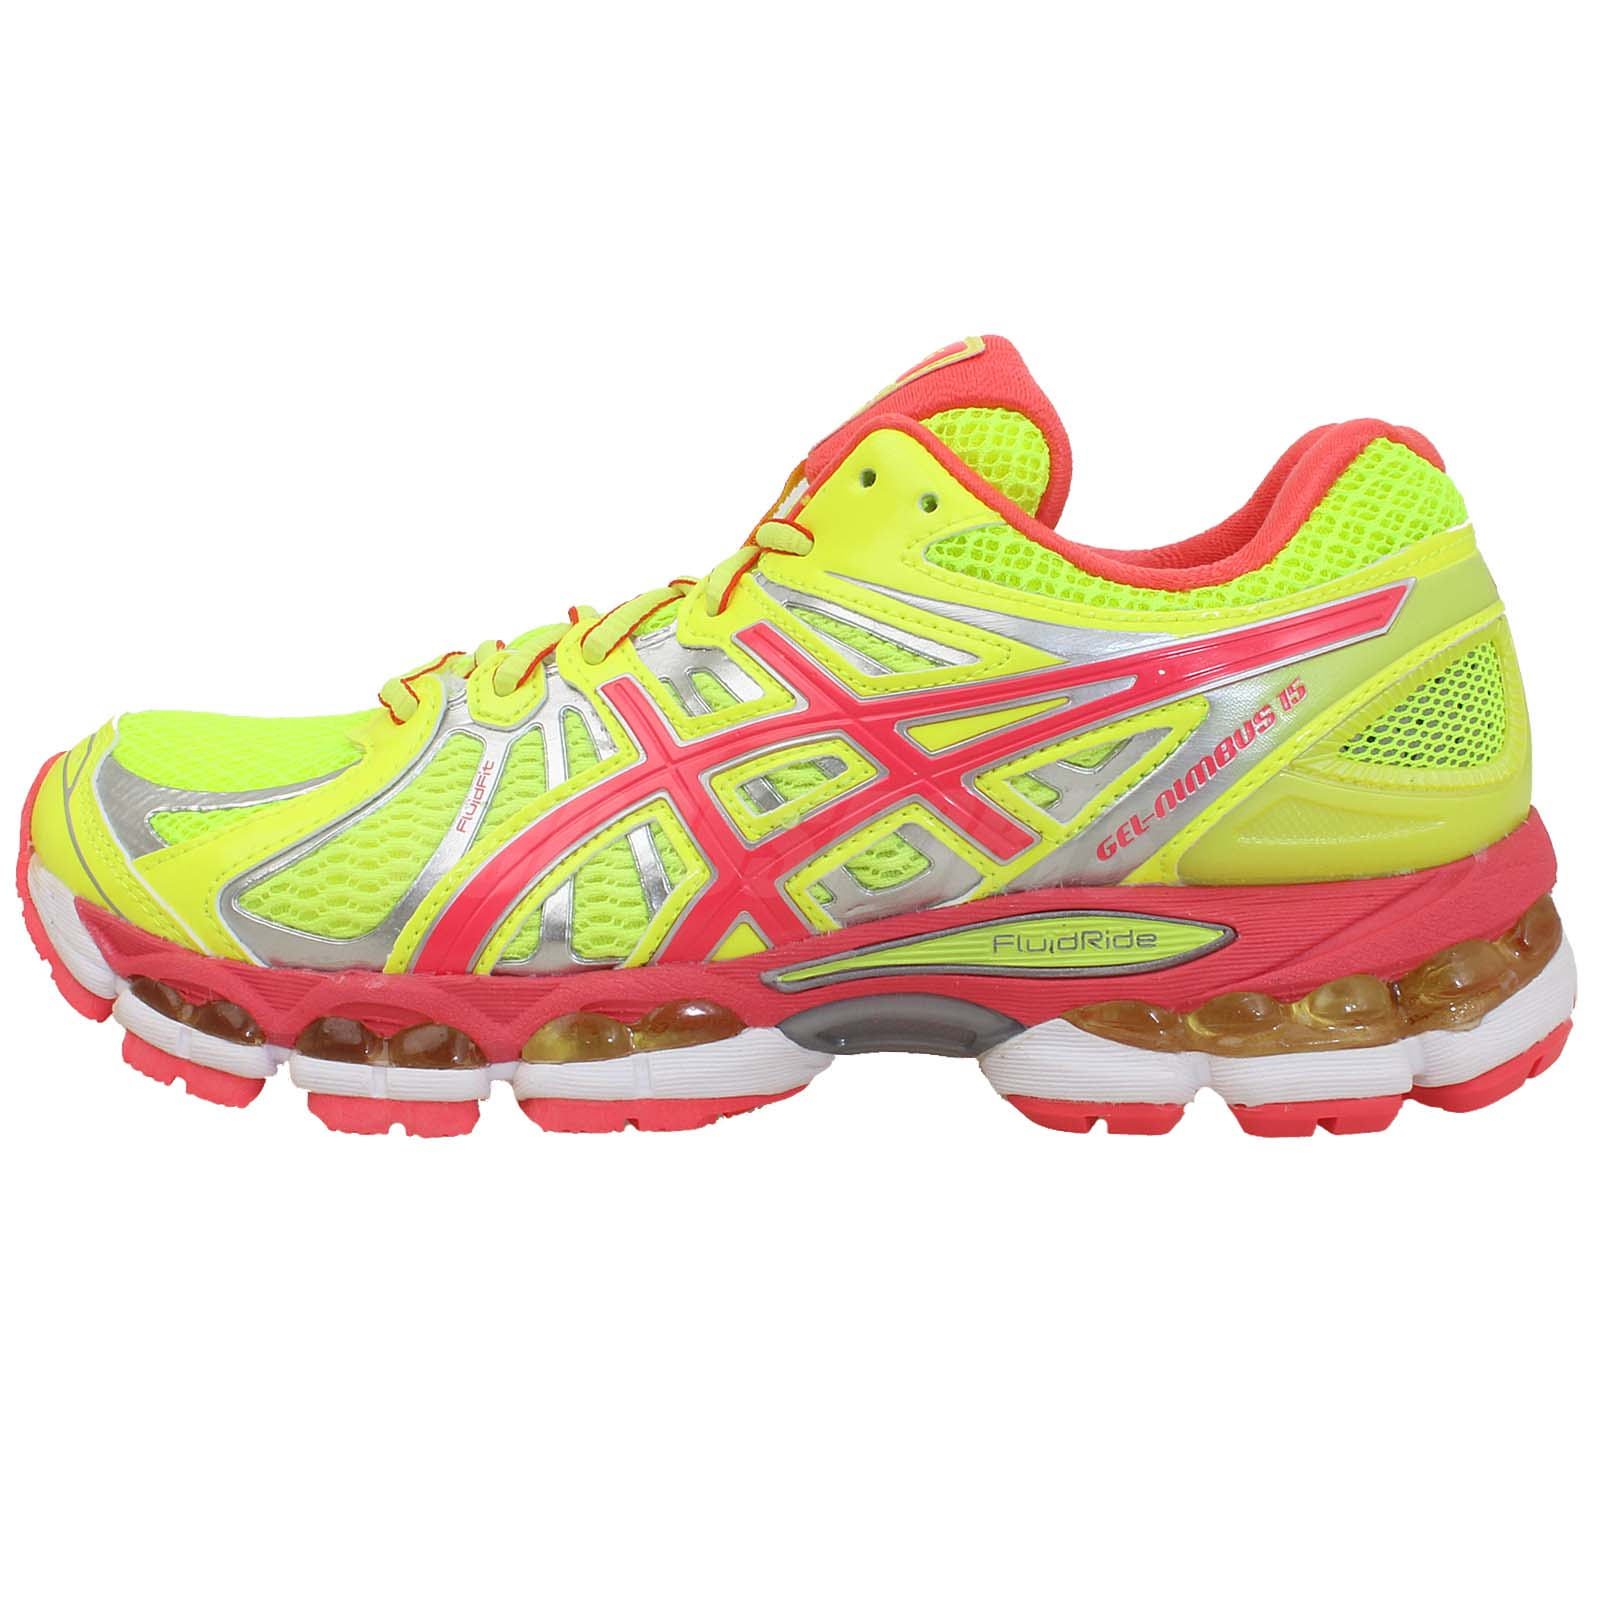 Asics Gel-Nimbus 15 2013 Neon Yellow Pink Womens Cute ...